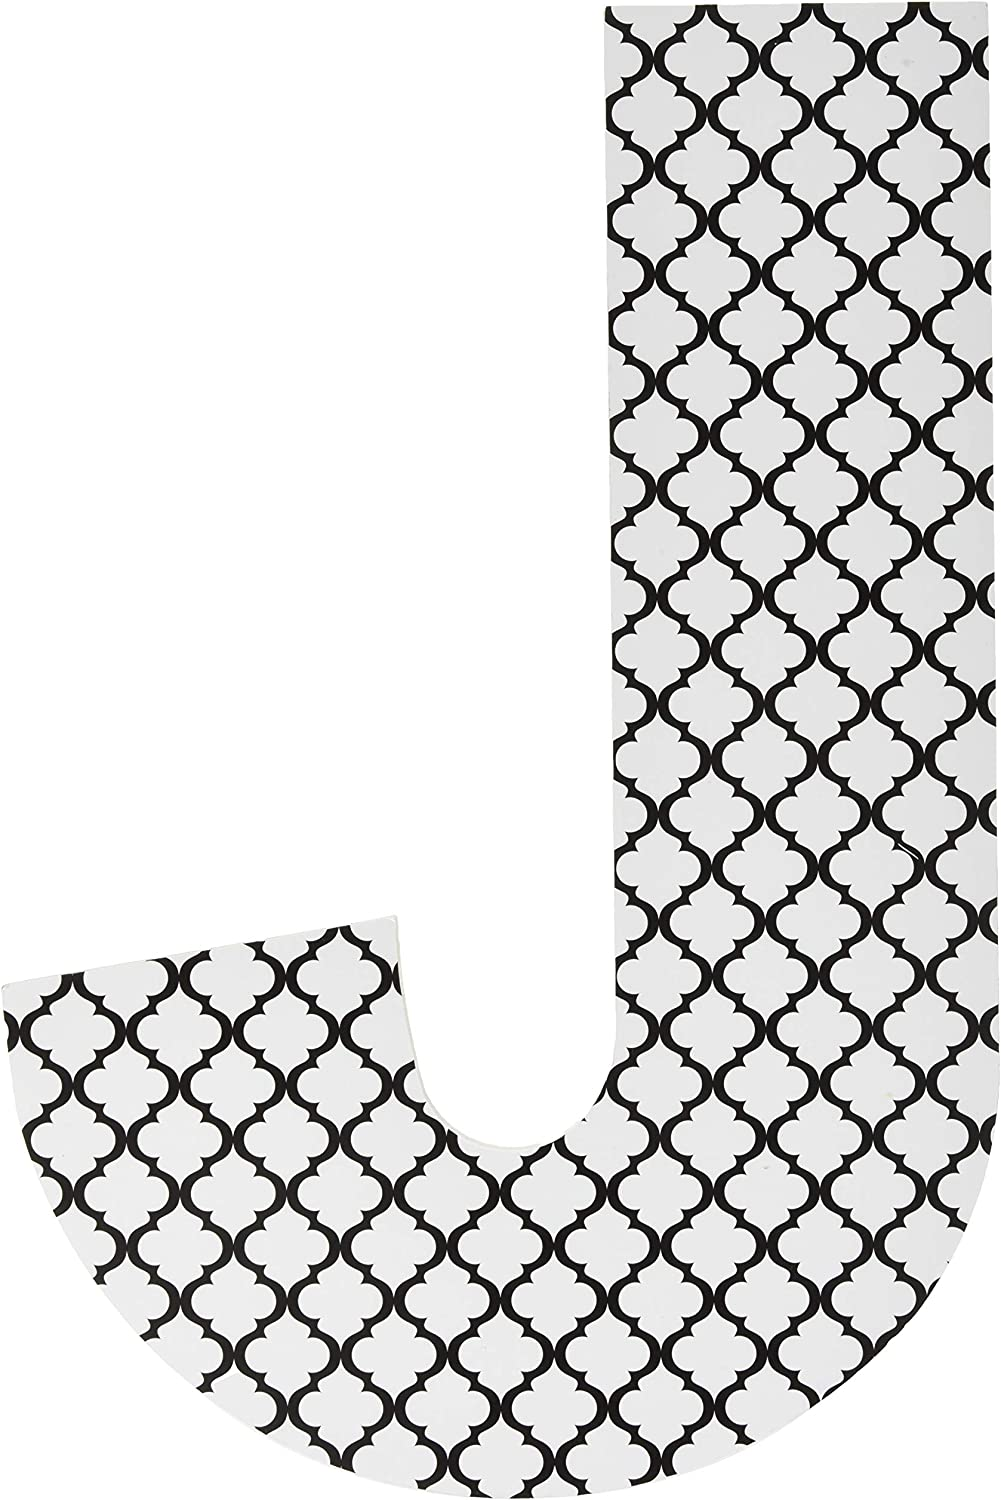 12 x 0.5 x 18 Proudly Made in USA Stupell Home D/écor Black and White Trellis 18 Inch Hanging Wooden Initial